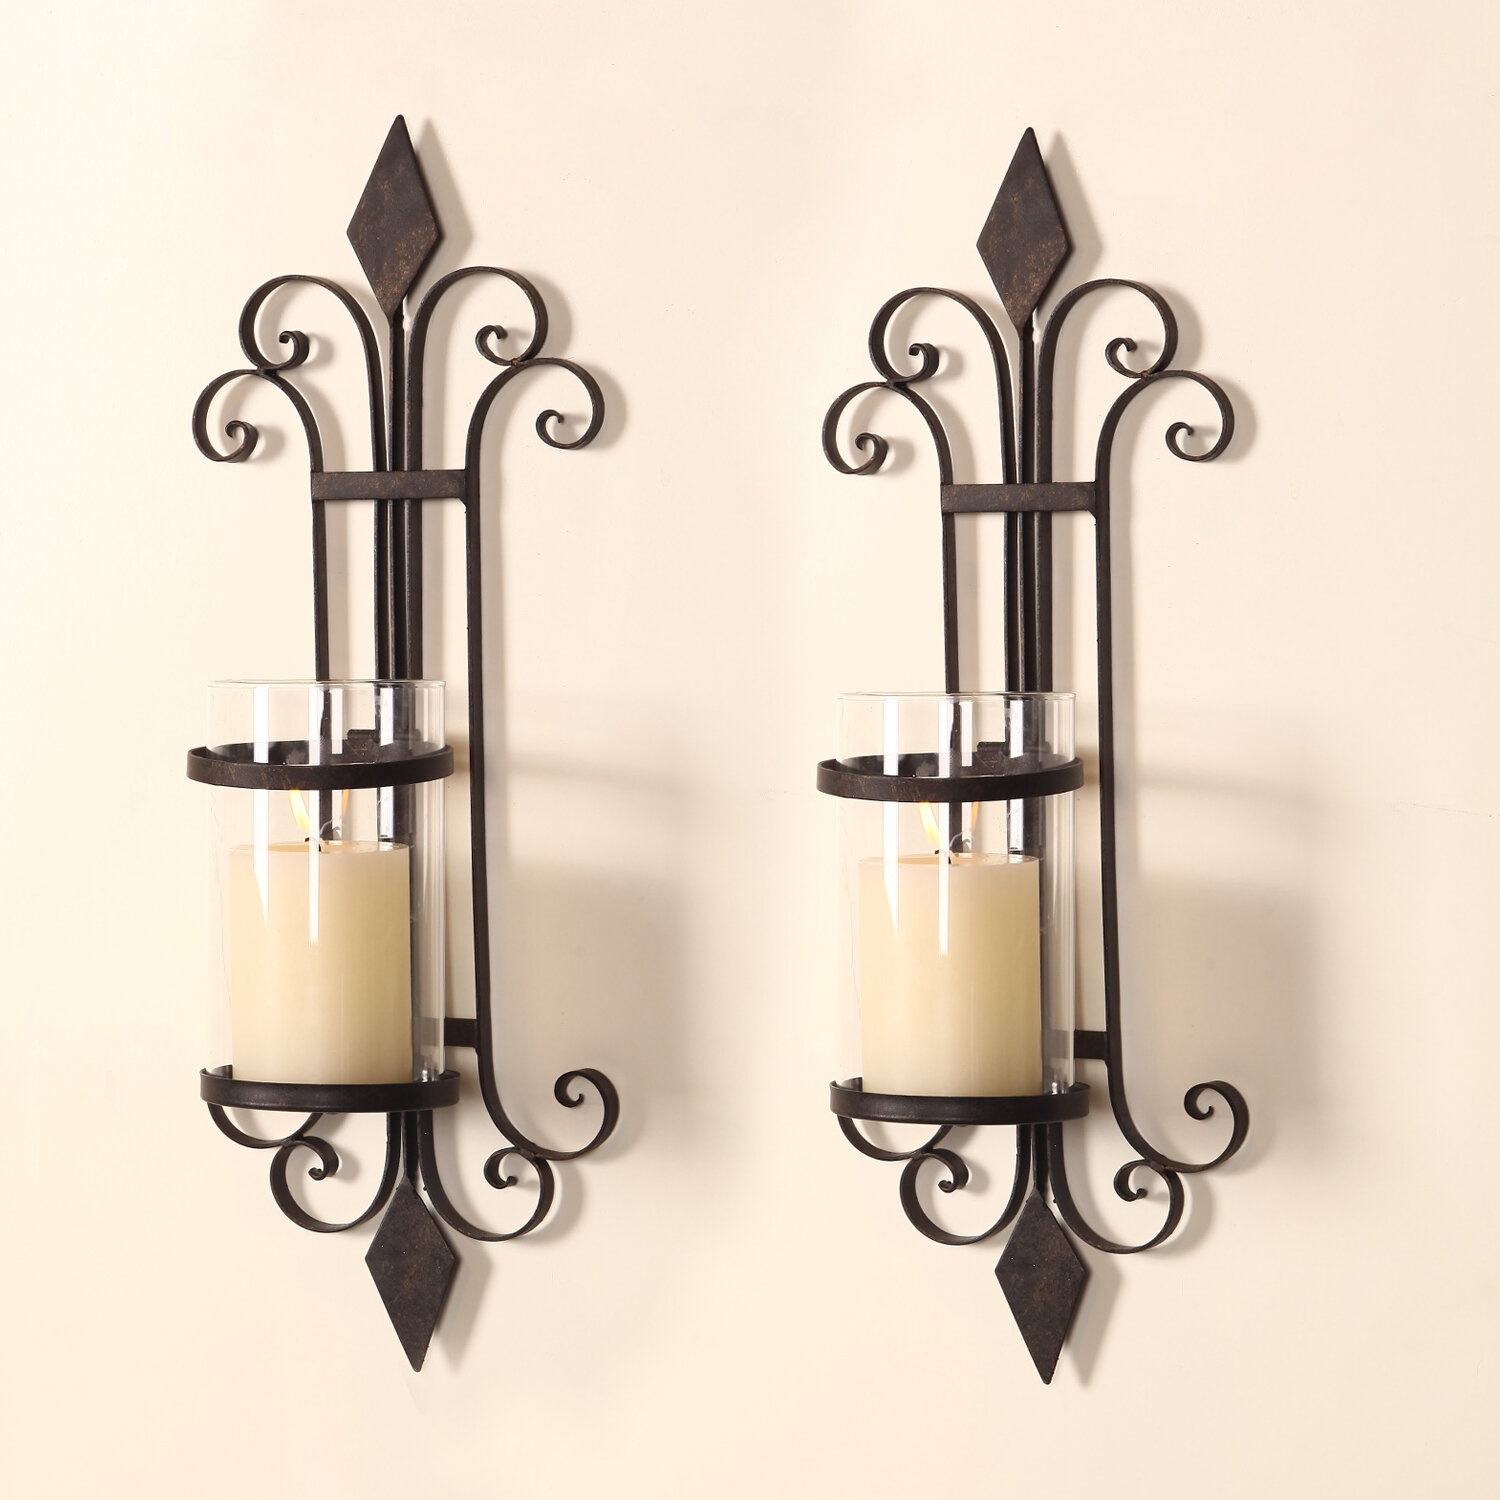 sconce holder yankee candle wall sconces full for candles walls size of brass sale iron holders metal